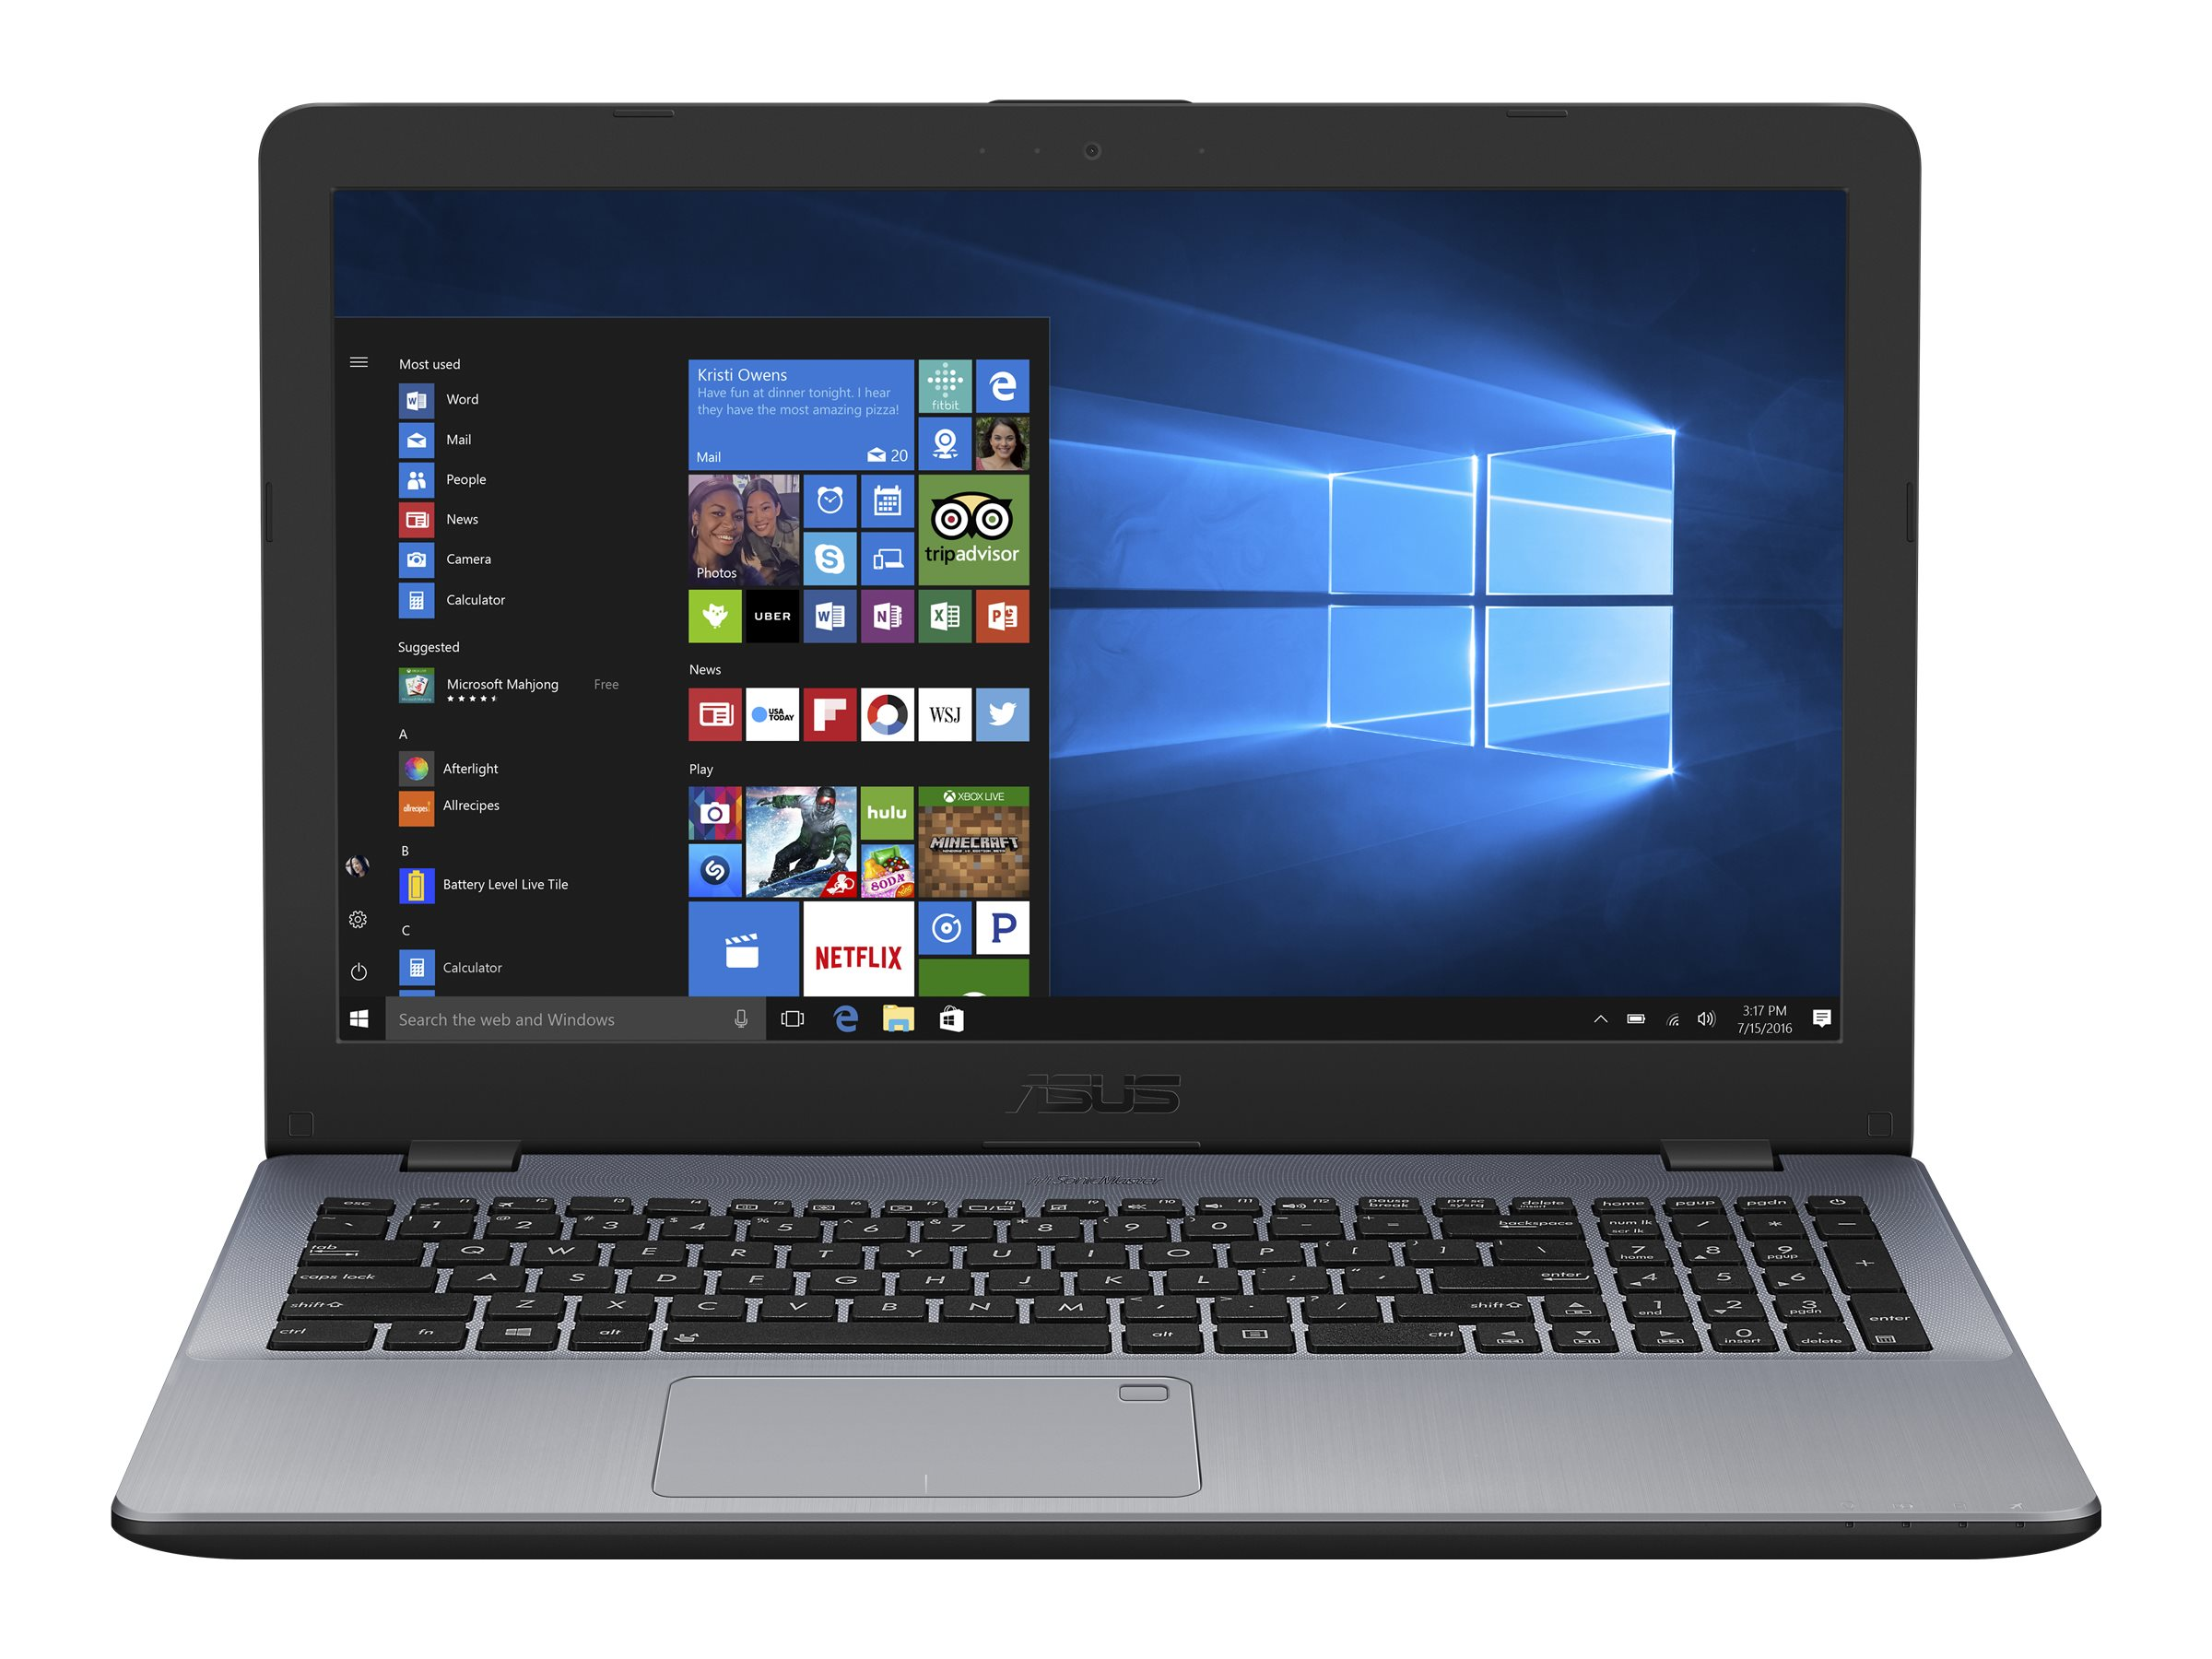 ASUS VivoBook 15 X542UQ DM026T - Core i5 7200U / 2.5 GHz - Win 10 Home 64-Bit - 8 GB RAM - 256 GB SSD - DVD SuperMulti